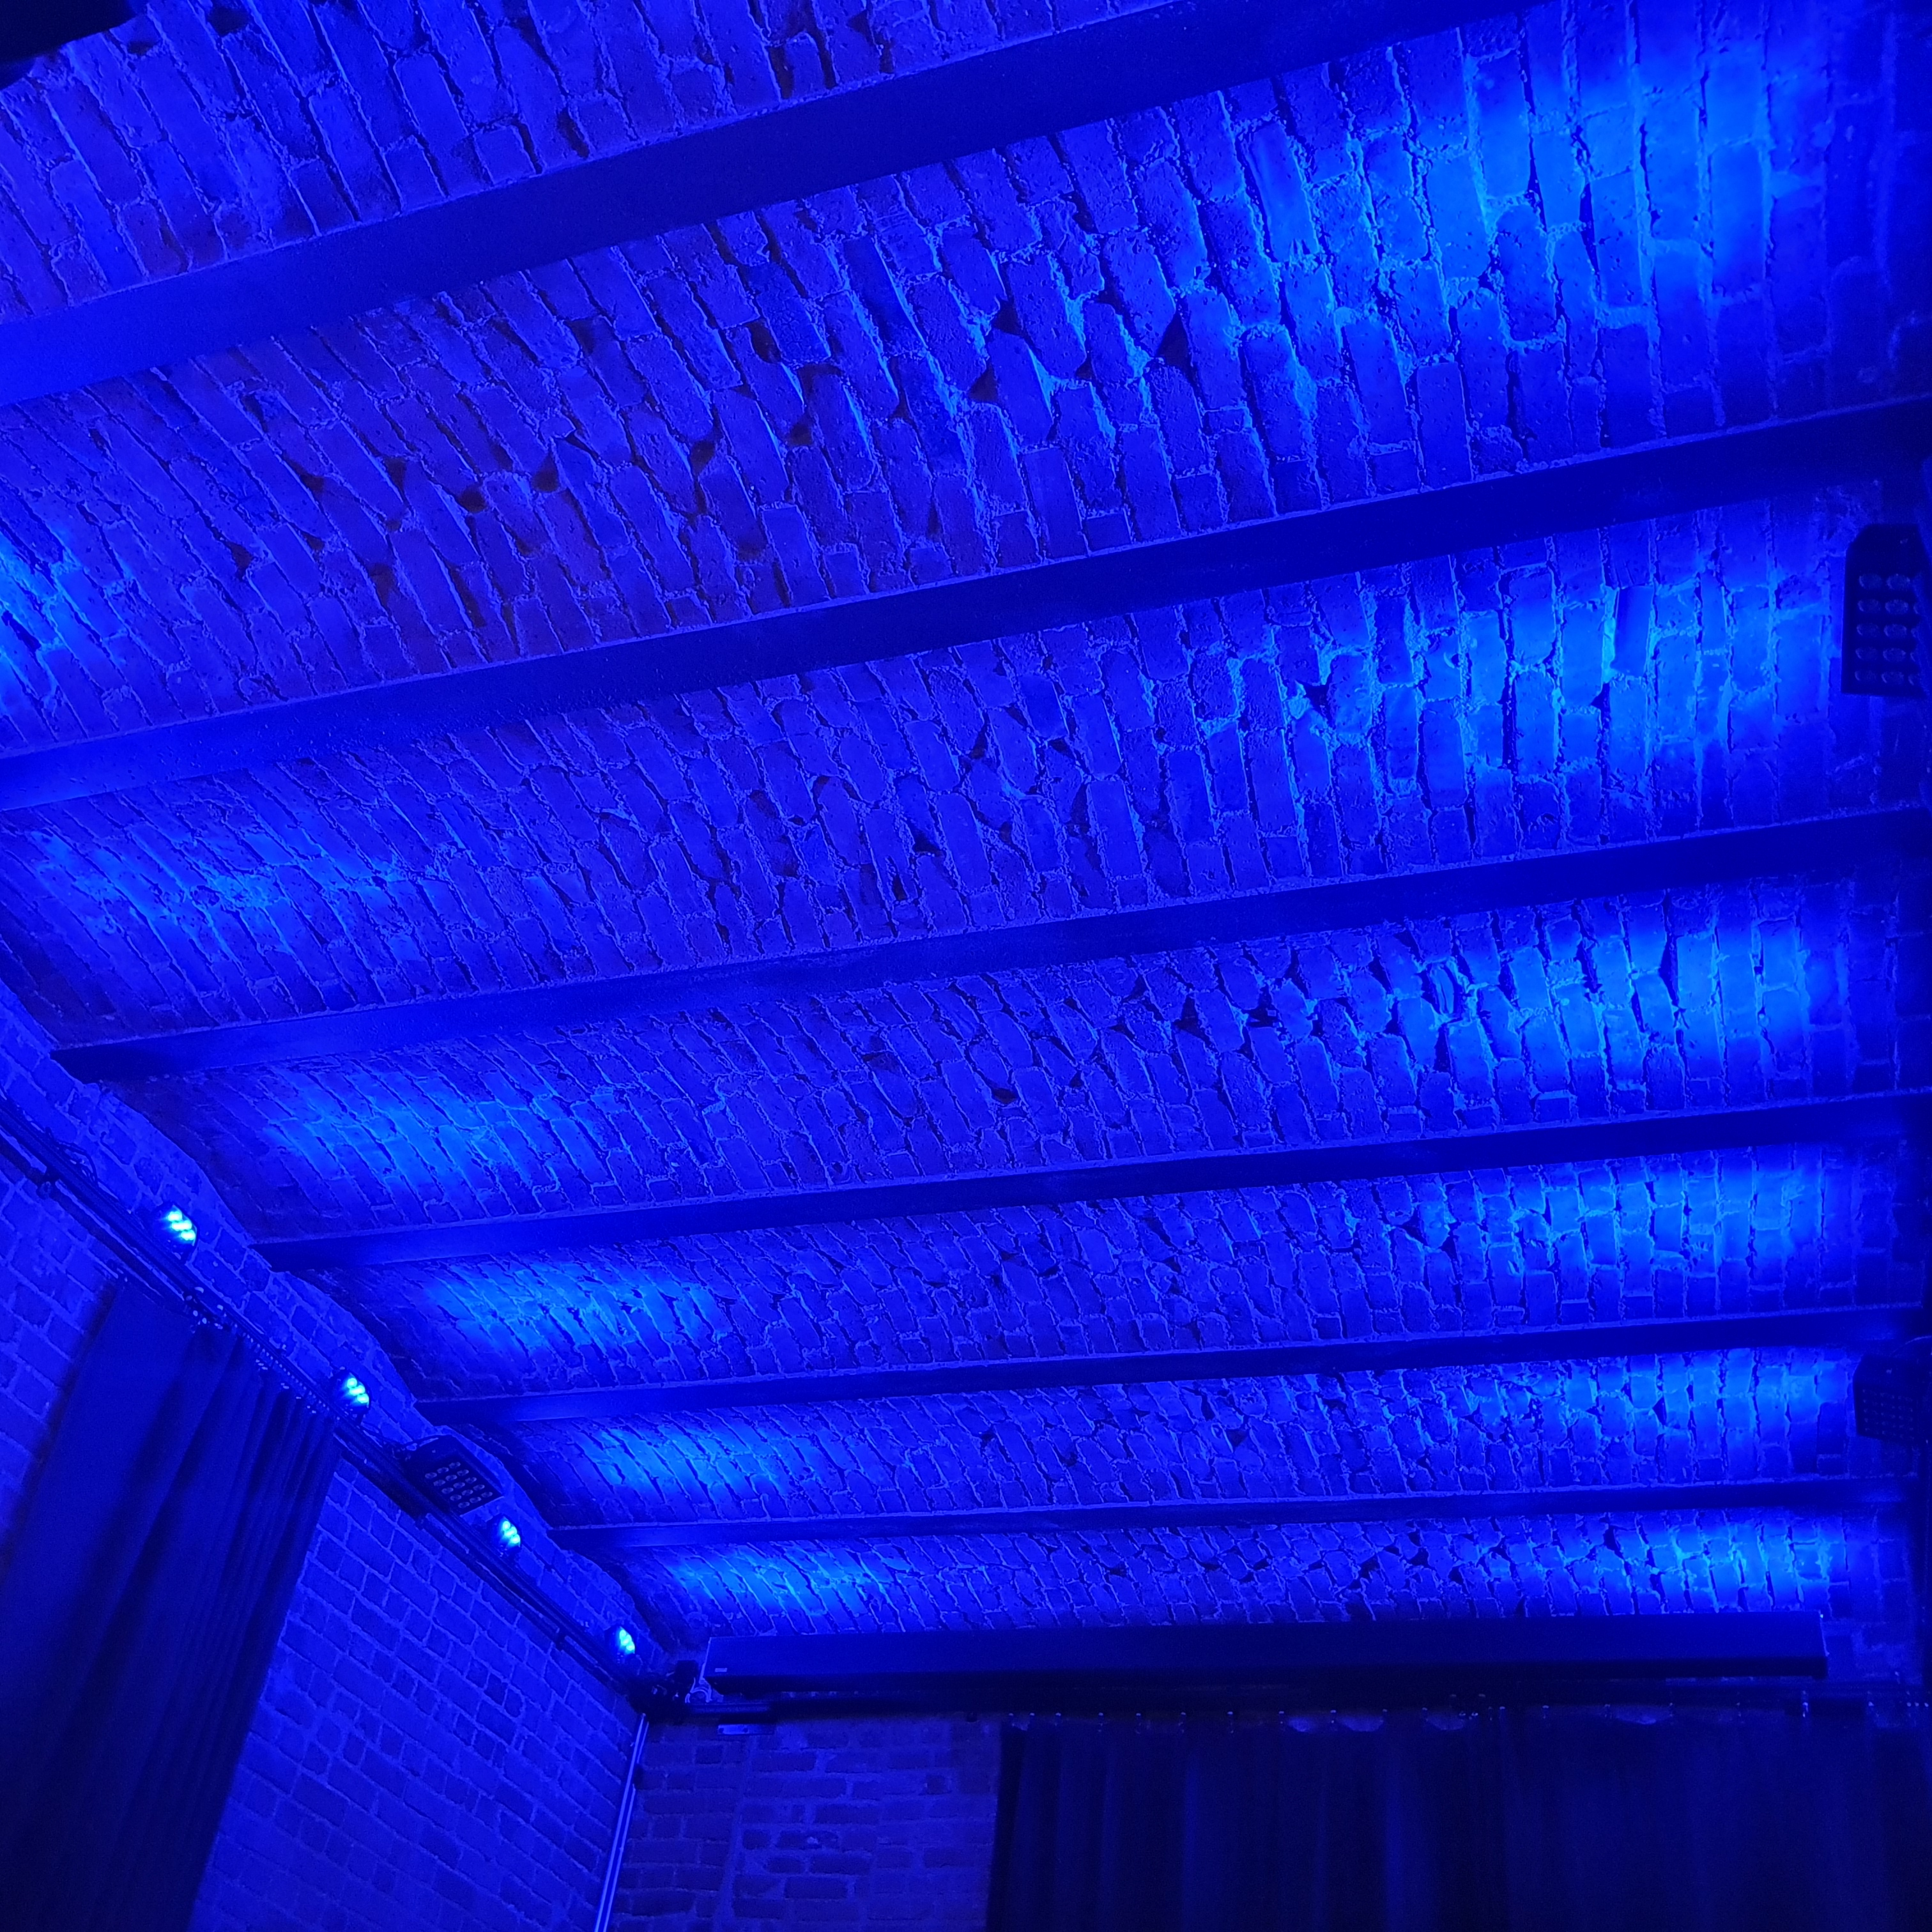 Red brick ceiling with steel railway track girders in Kammio bathed in blue light